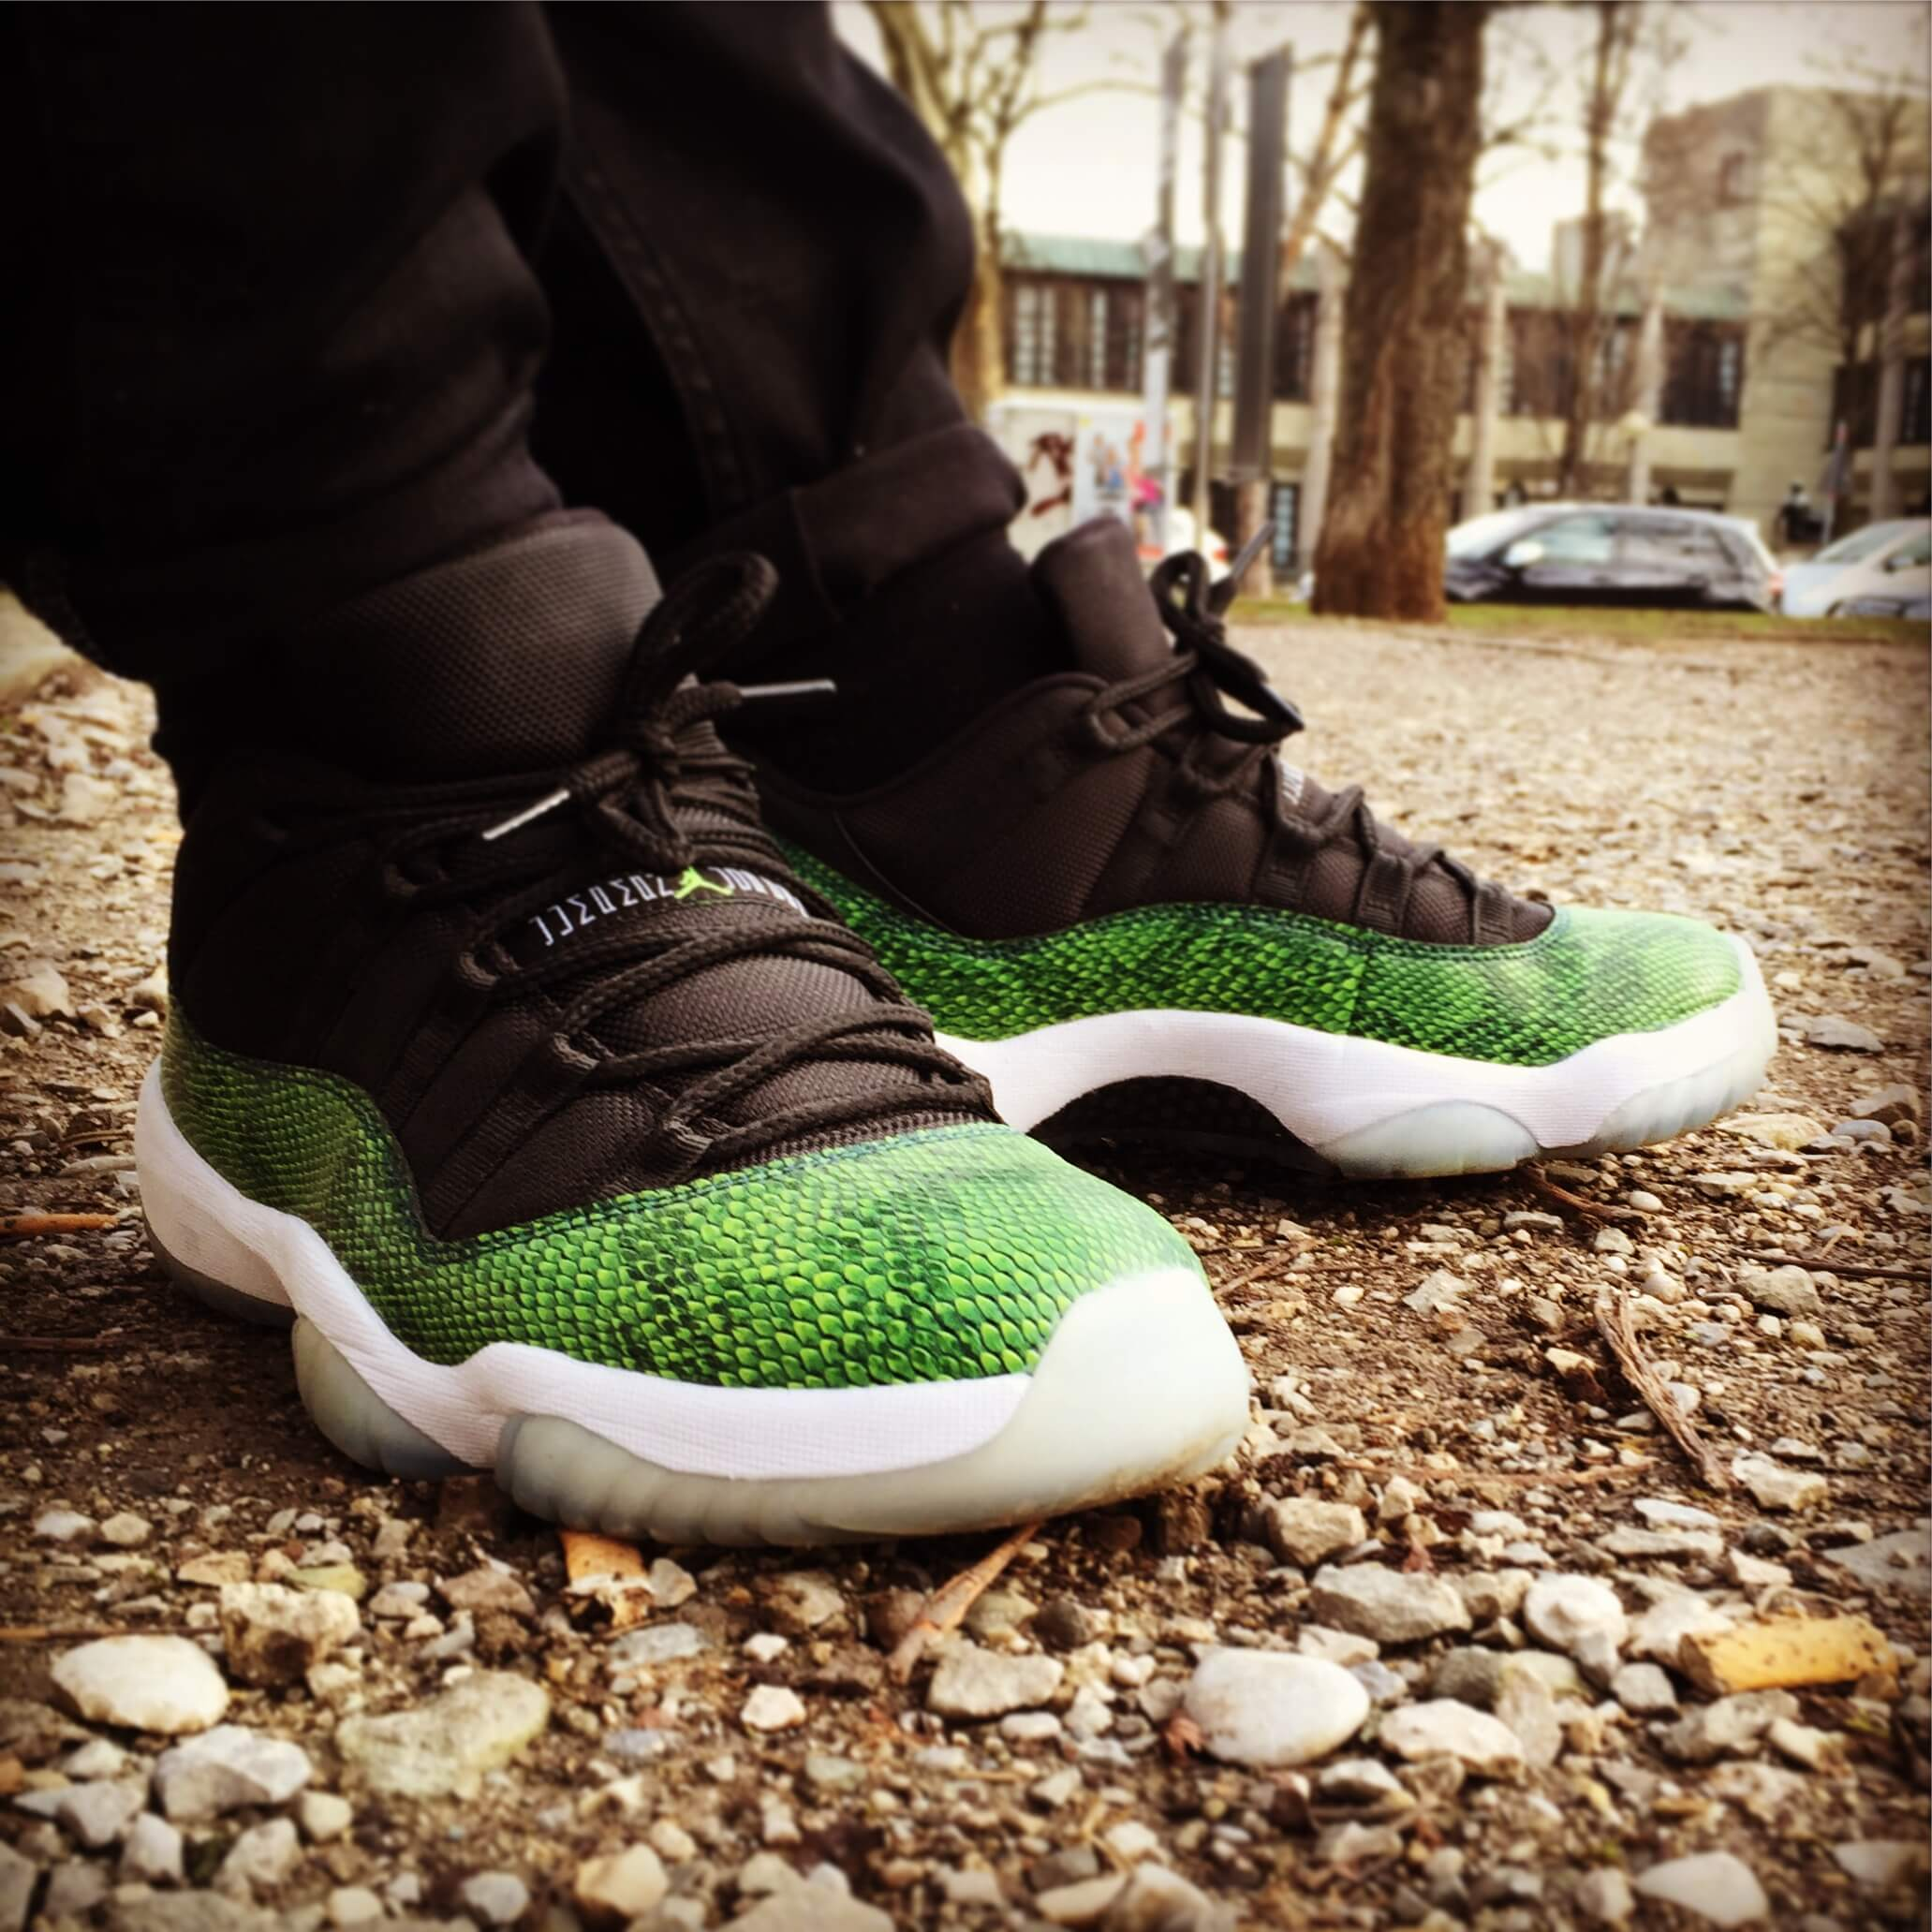 Air-Jordan-11-Low-Green-Snake-Nightshade-Side-View-Benstah